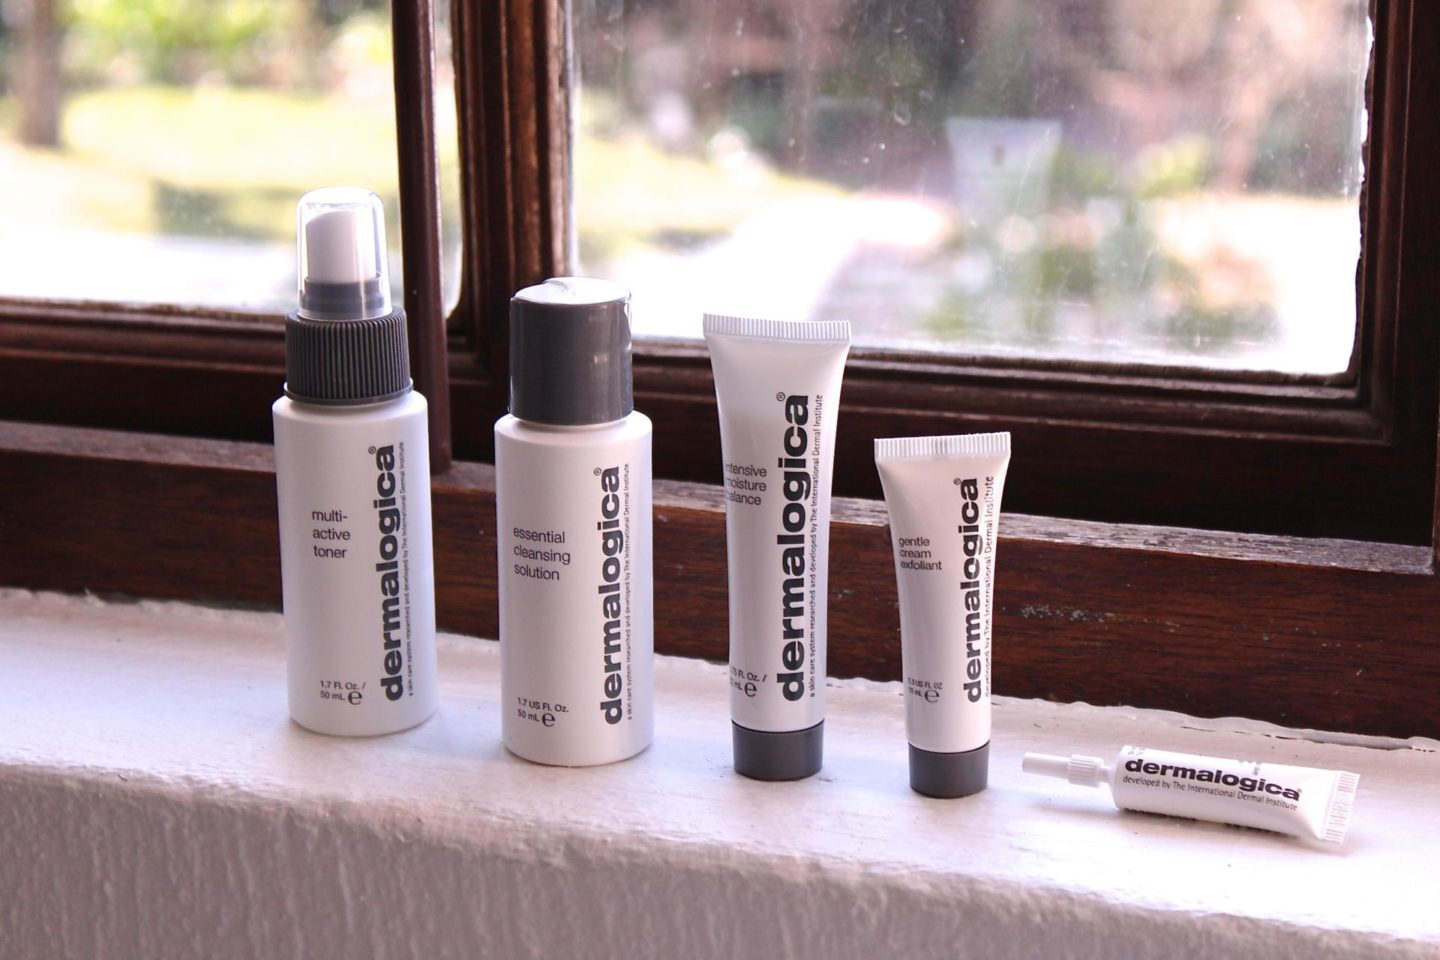 Talking Skincare: My Dermalogica Edition!